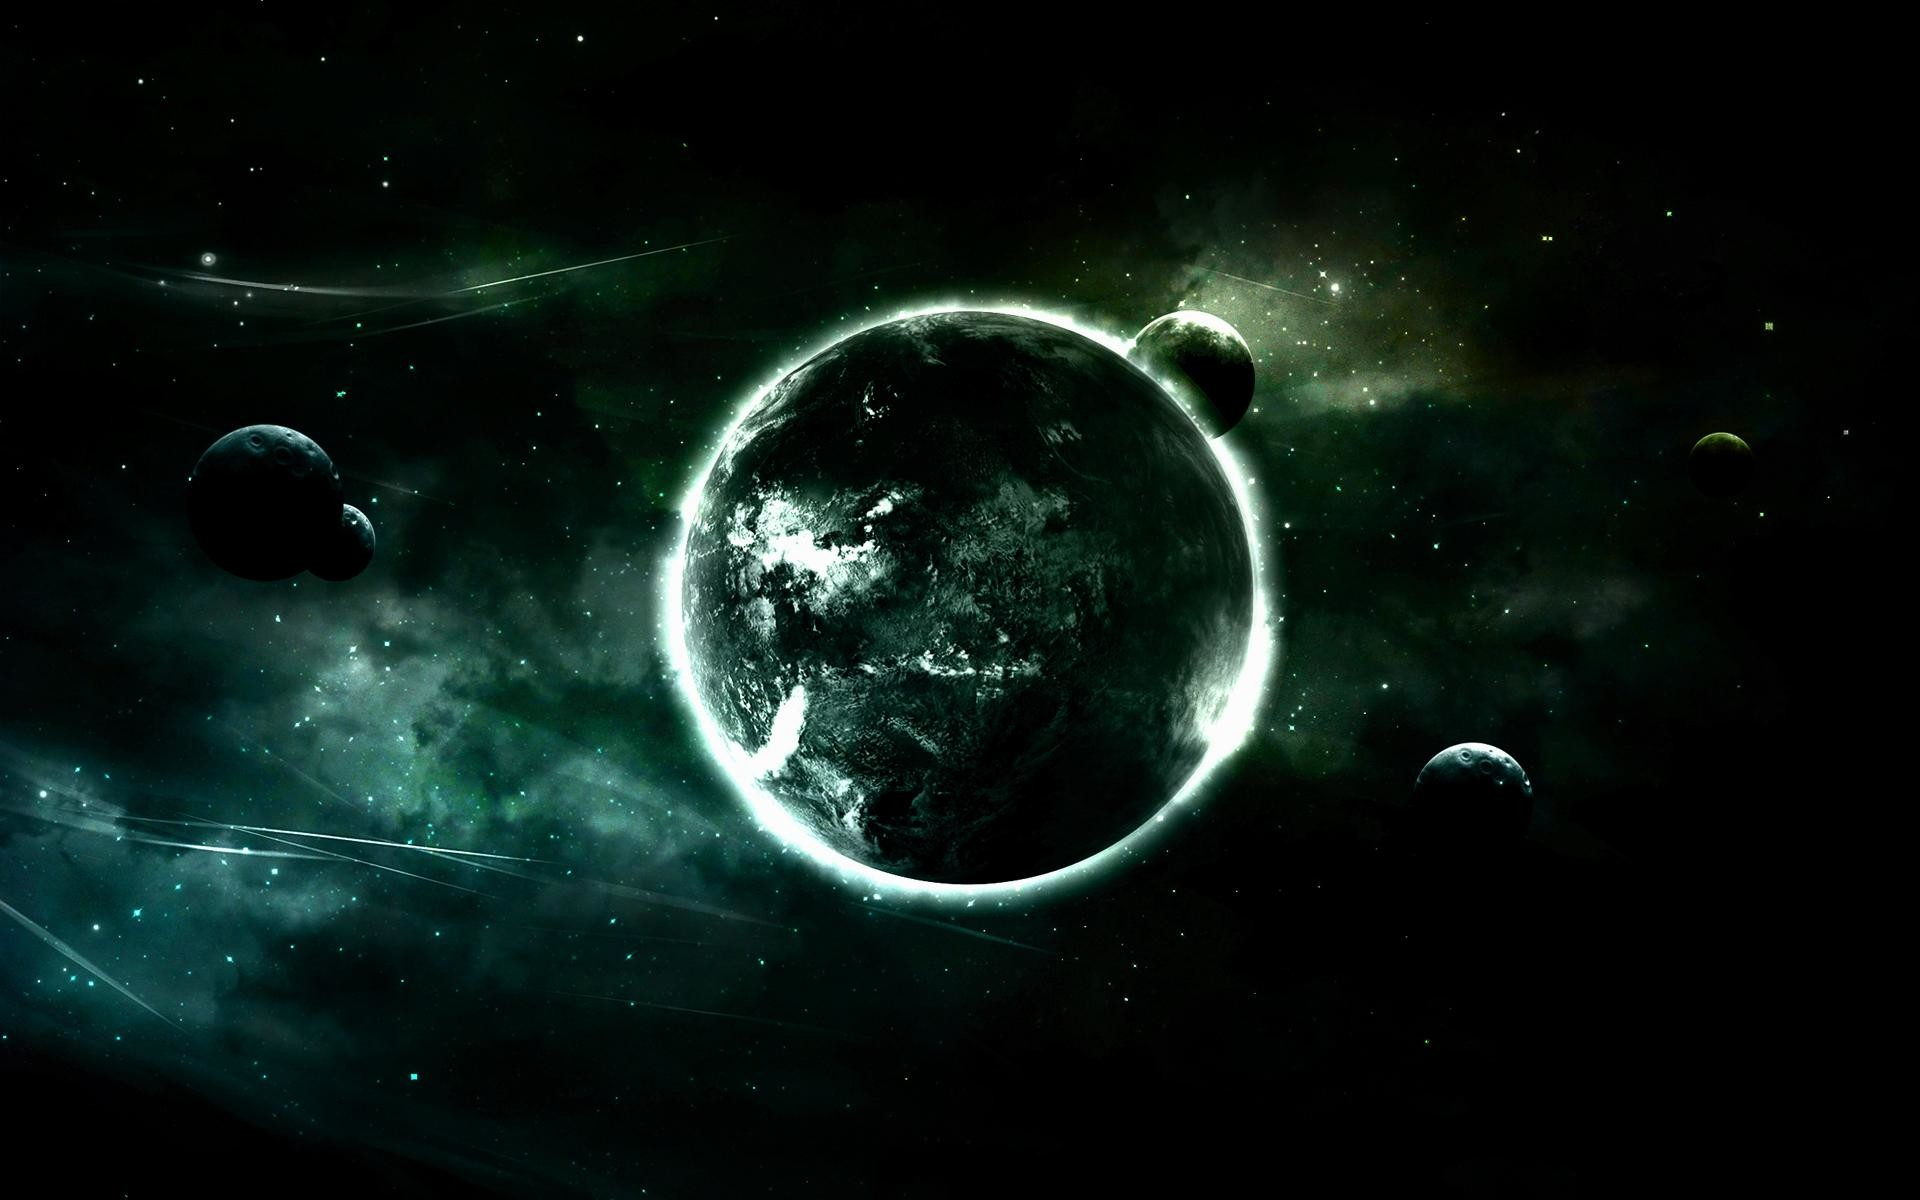 wallpaper.wiki-Green-Planet-Background-Free-Download-PIC-